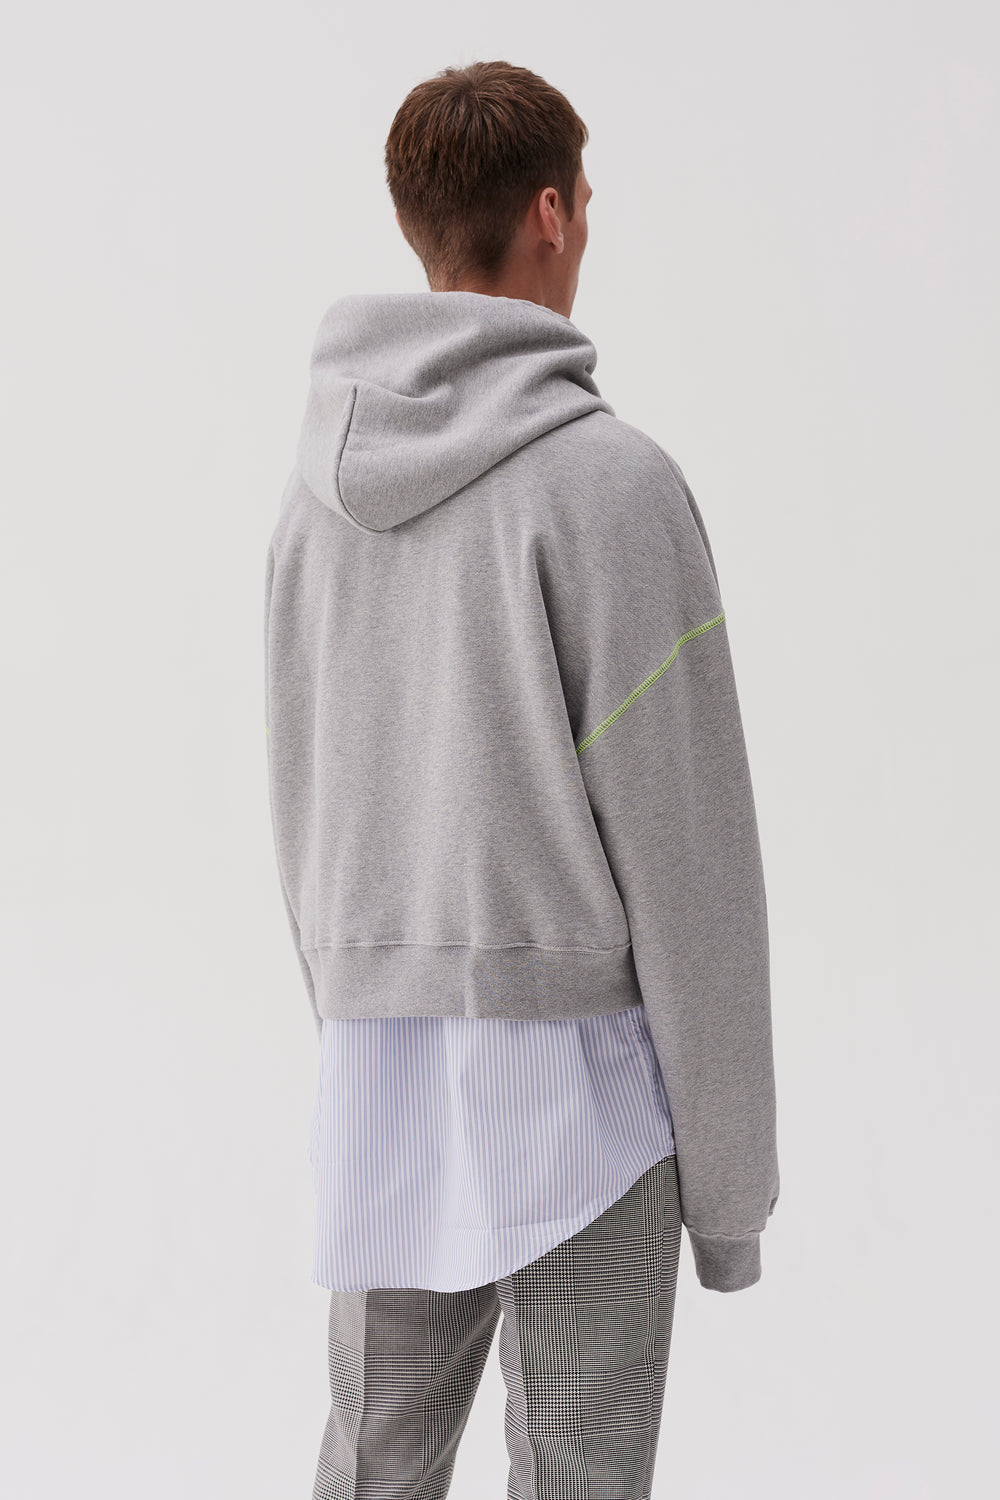 Tyrone Hooded Sweatshirt Grey Acid Yellow